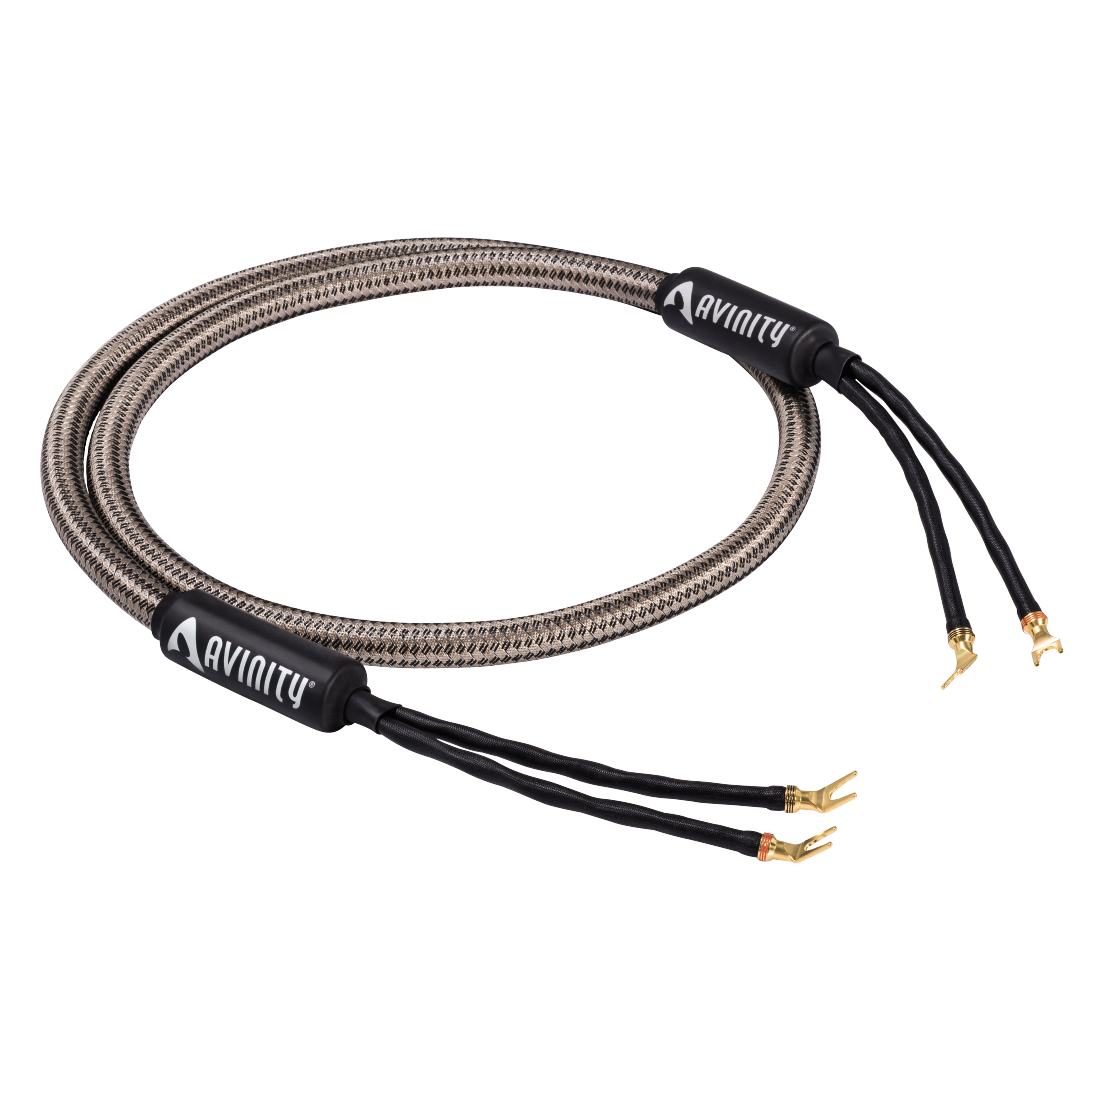 abx High-Res Image - Avinity, LR-269 Loudspeaker Cable, prefabricated 2 m, 2 x 6.00 mm²